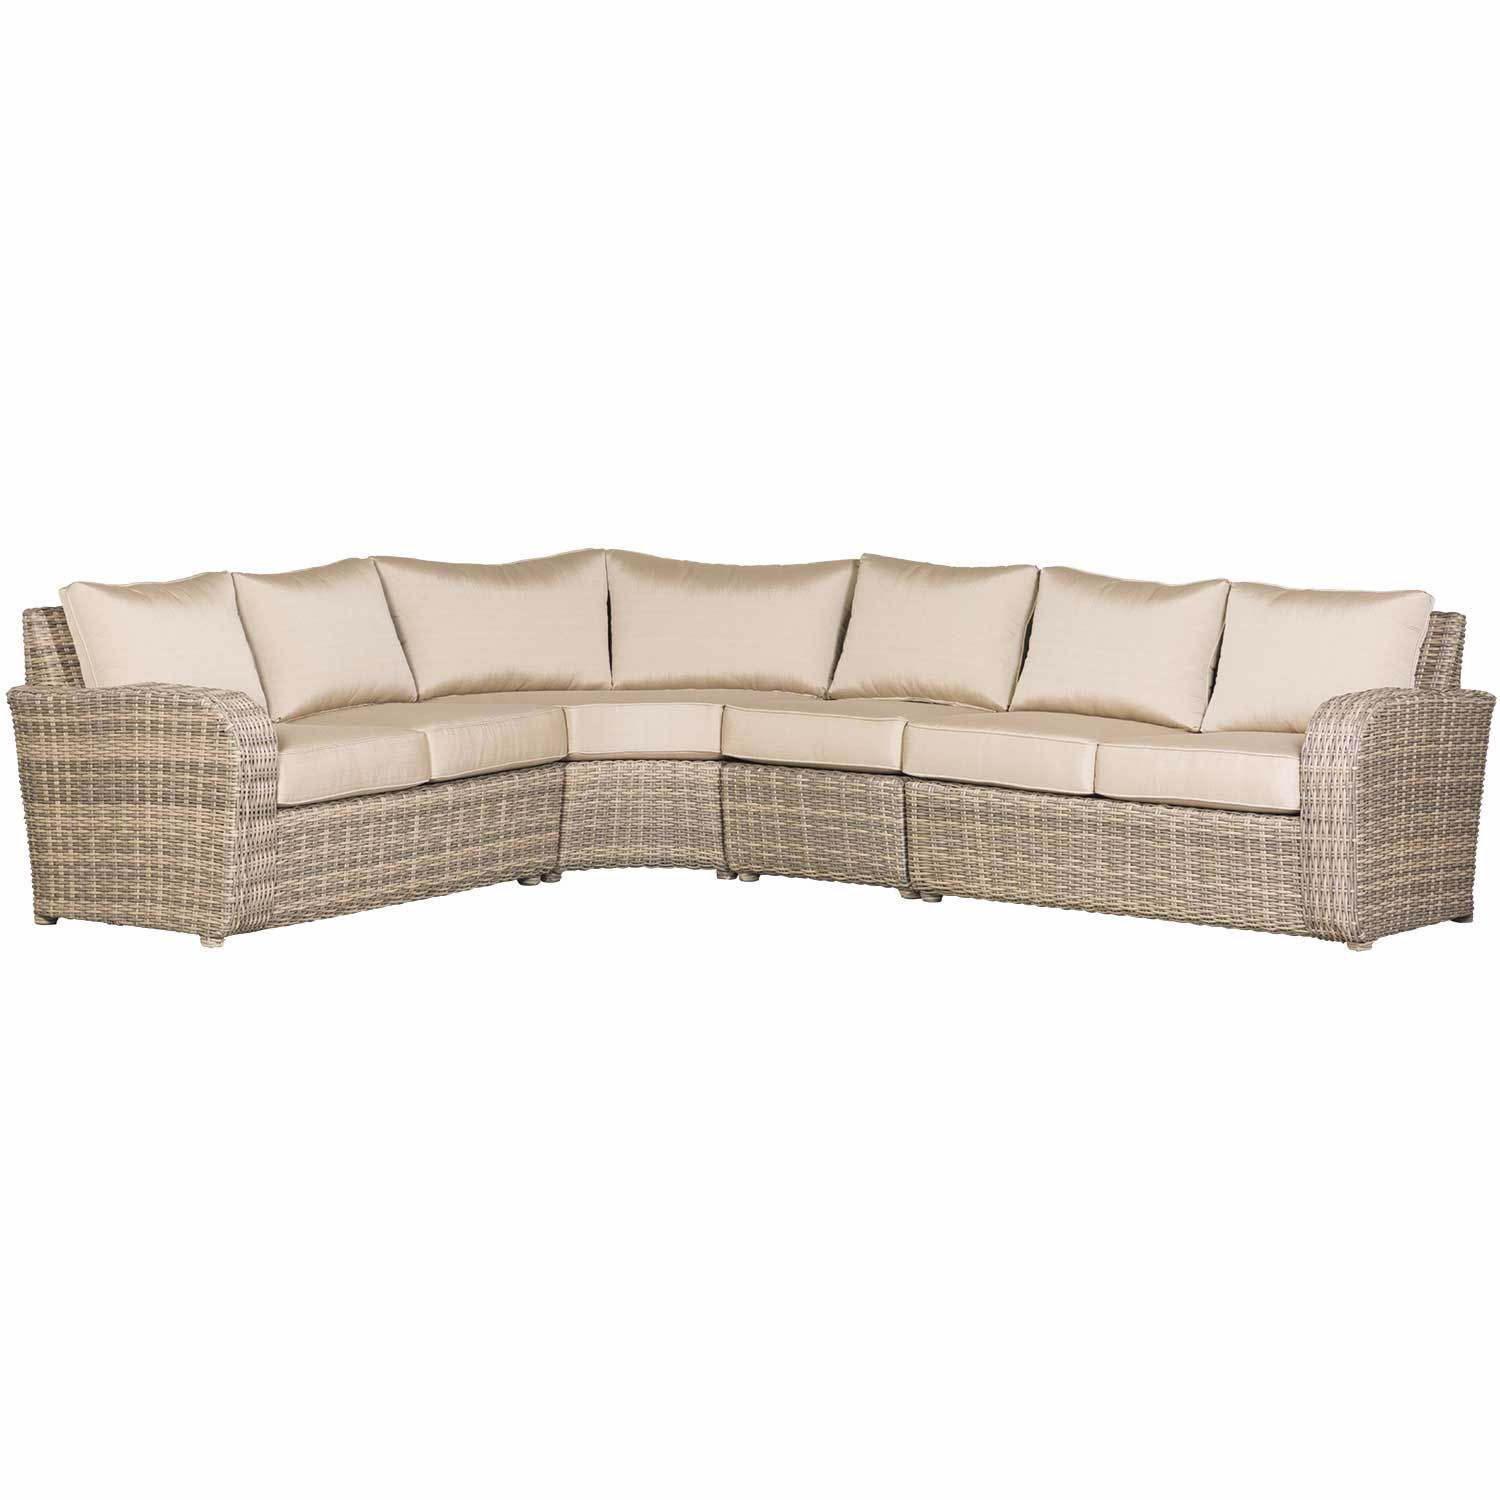 Picture of Brunswick 4 Piece Outdoor Sectional